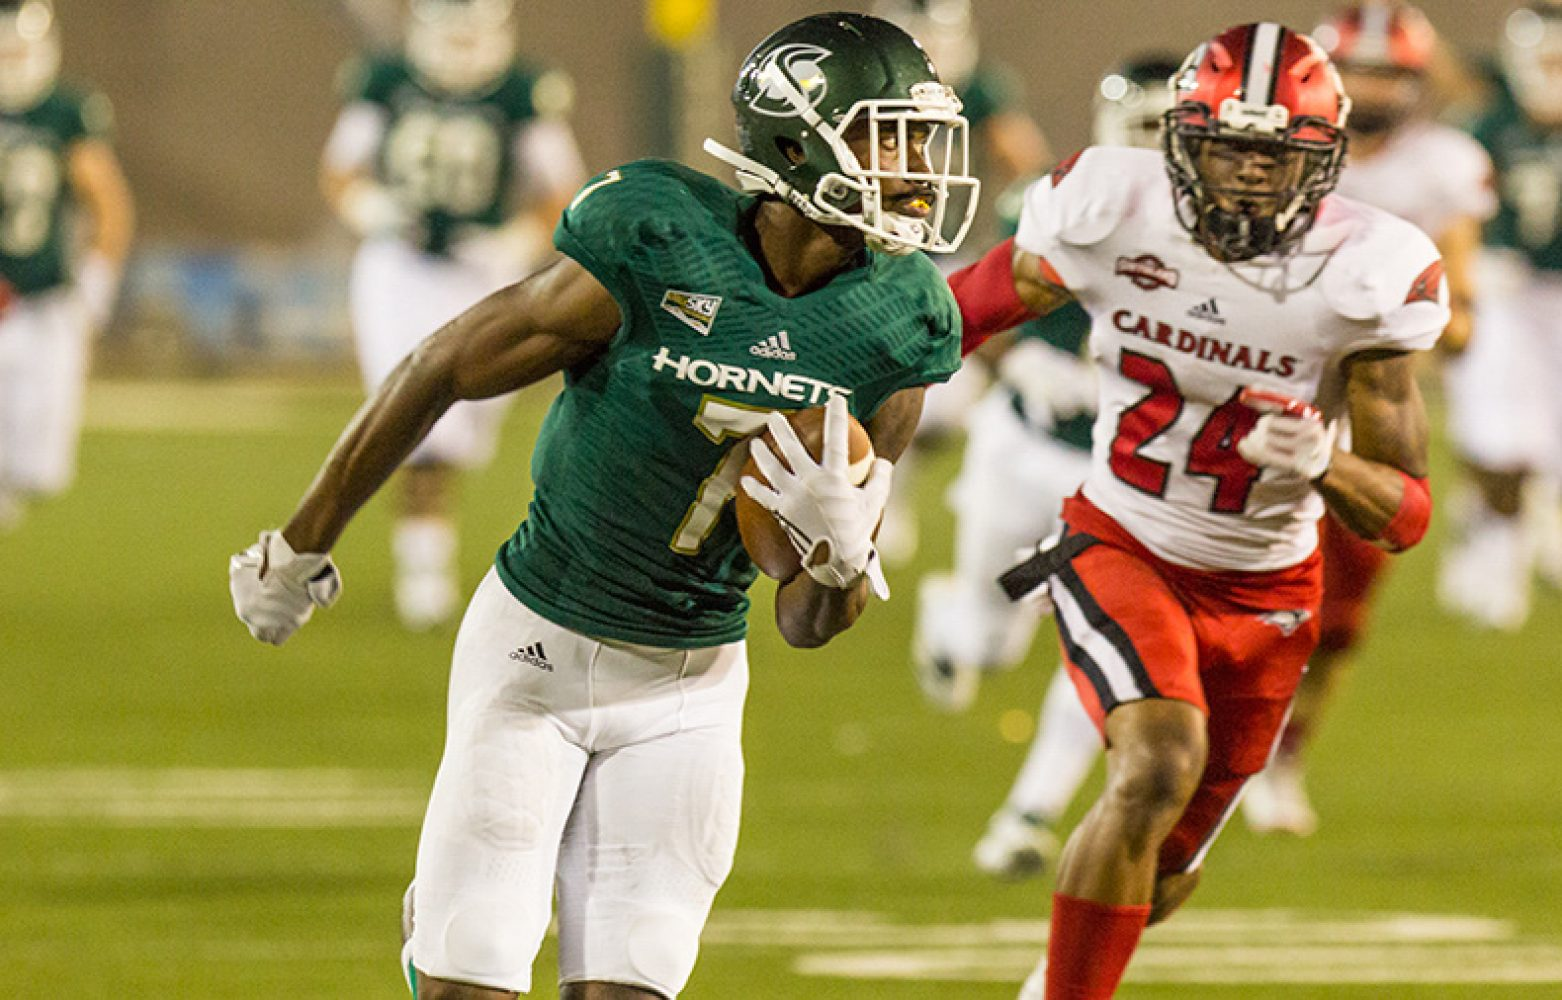 Sacramento State junior receiver Andre Lindsey out runs University of Incarnate Word sophomore safety Chris Thomas for a touchdown Saturday, Sept. 9 at Hornet Stadium. Sac State defeated UIW 56-22 for its first win of the season.